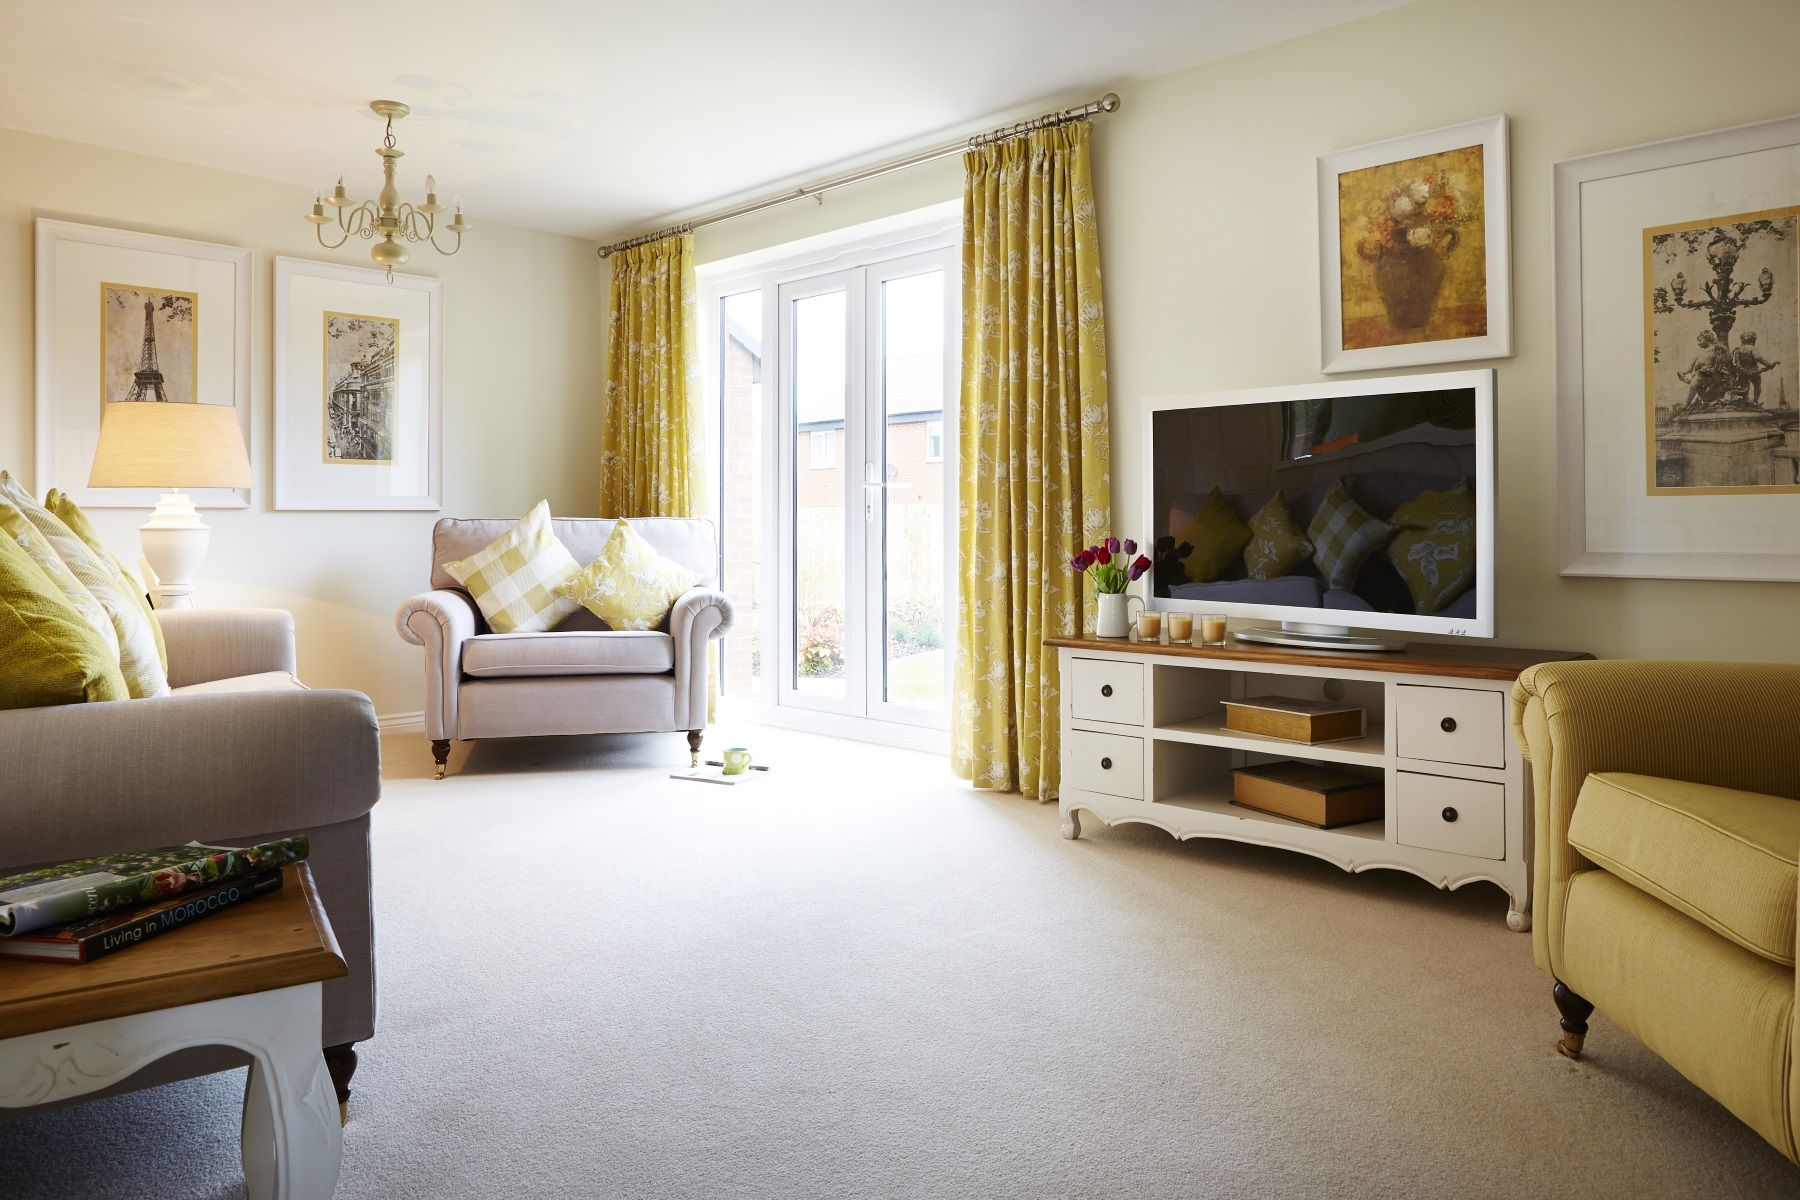 TW Exeter - Mayfield Gardens - Trsudale example living room